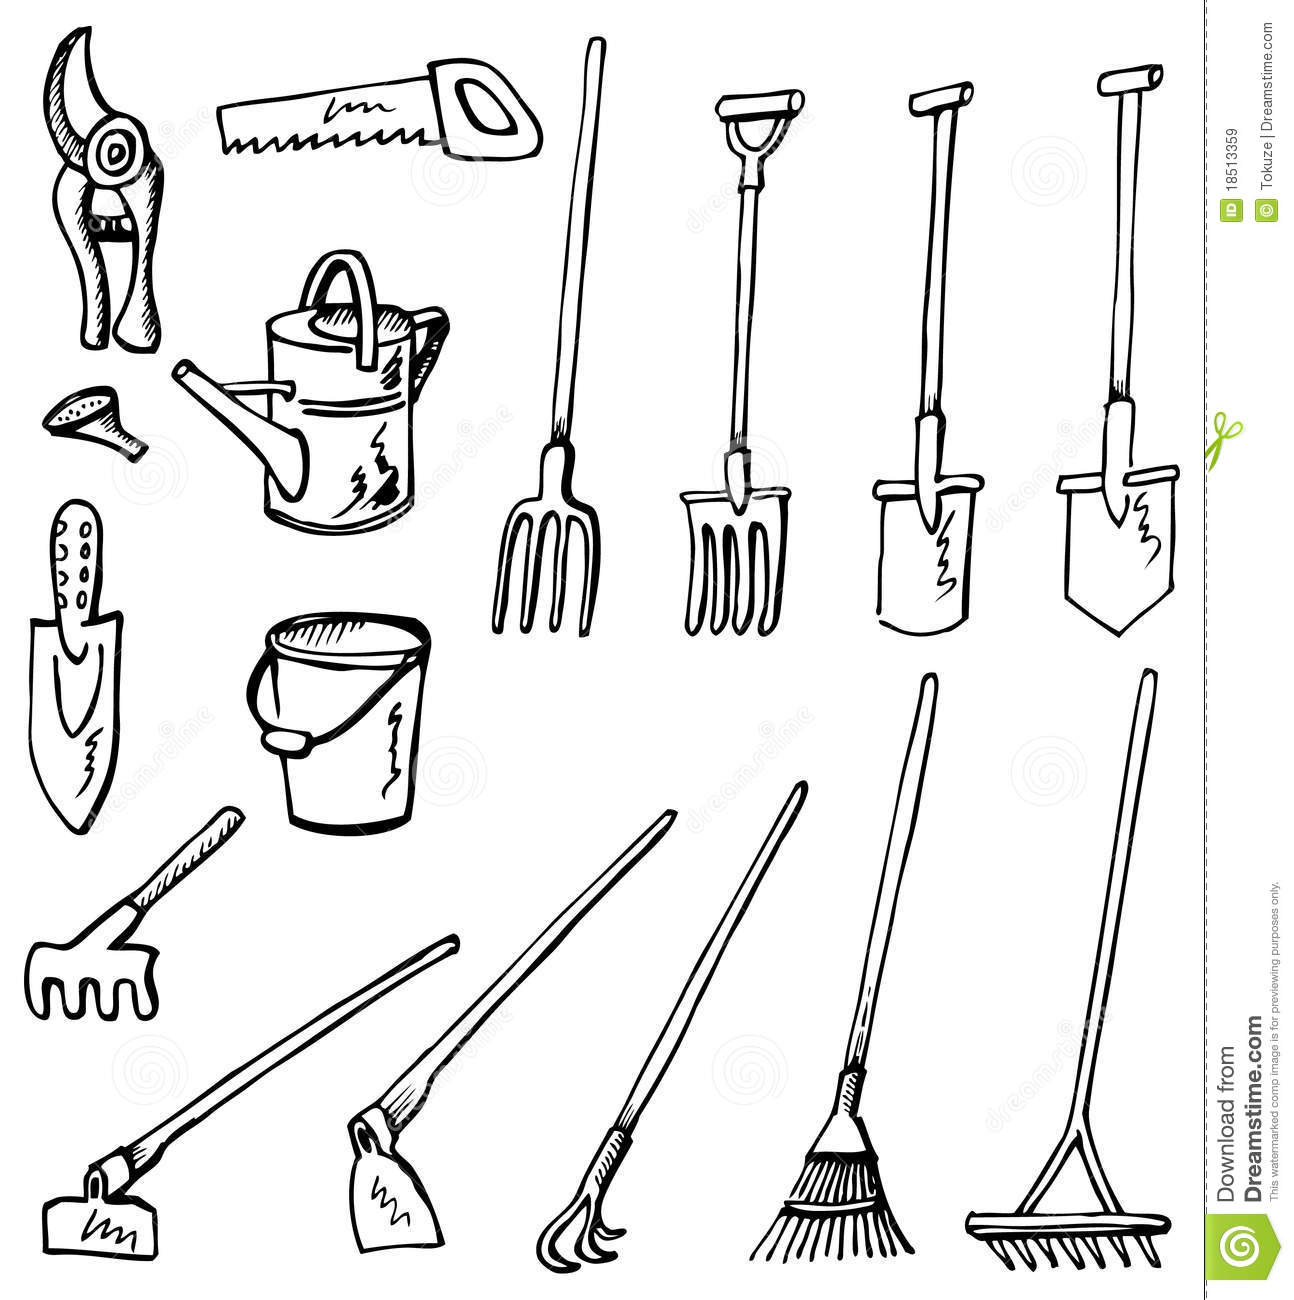 hoe garden tool coloring pages - photo#15